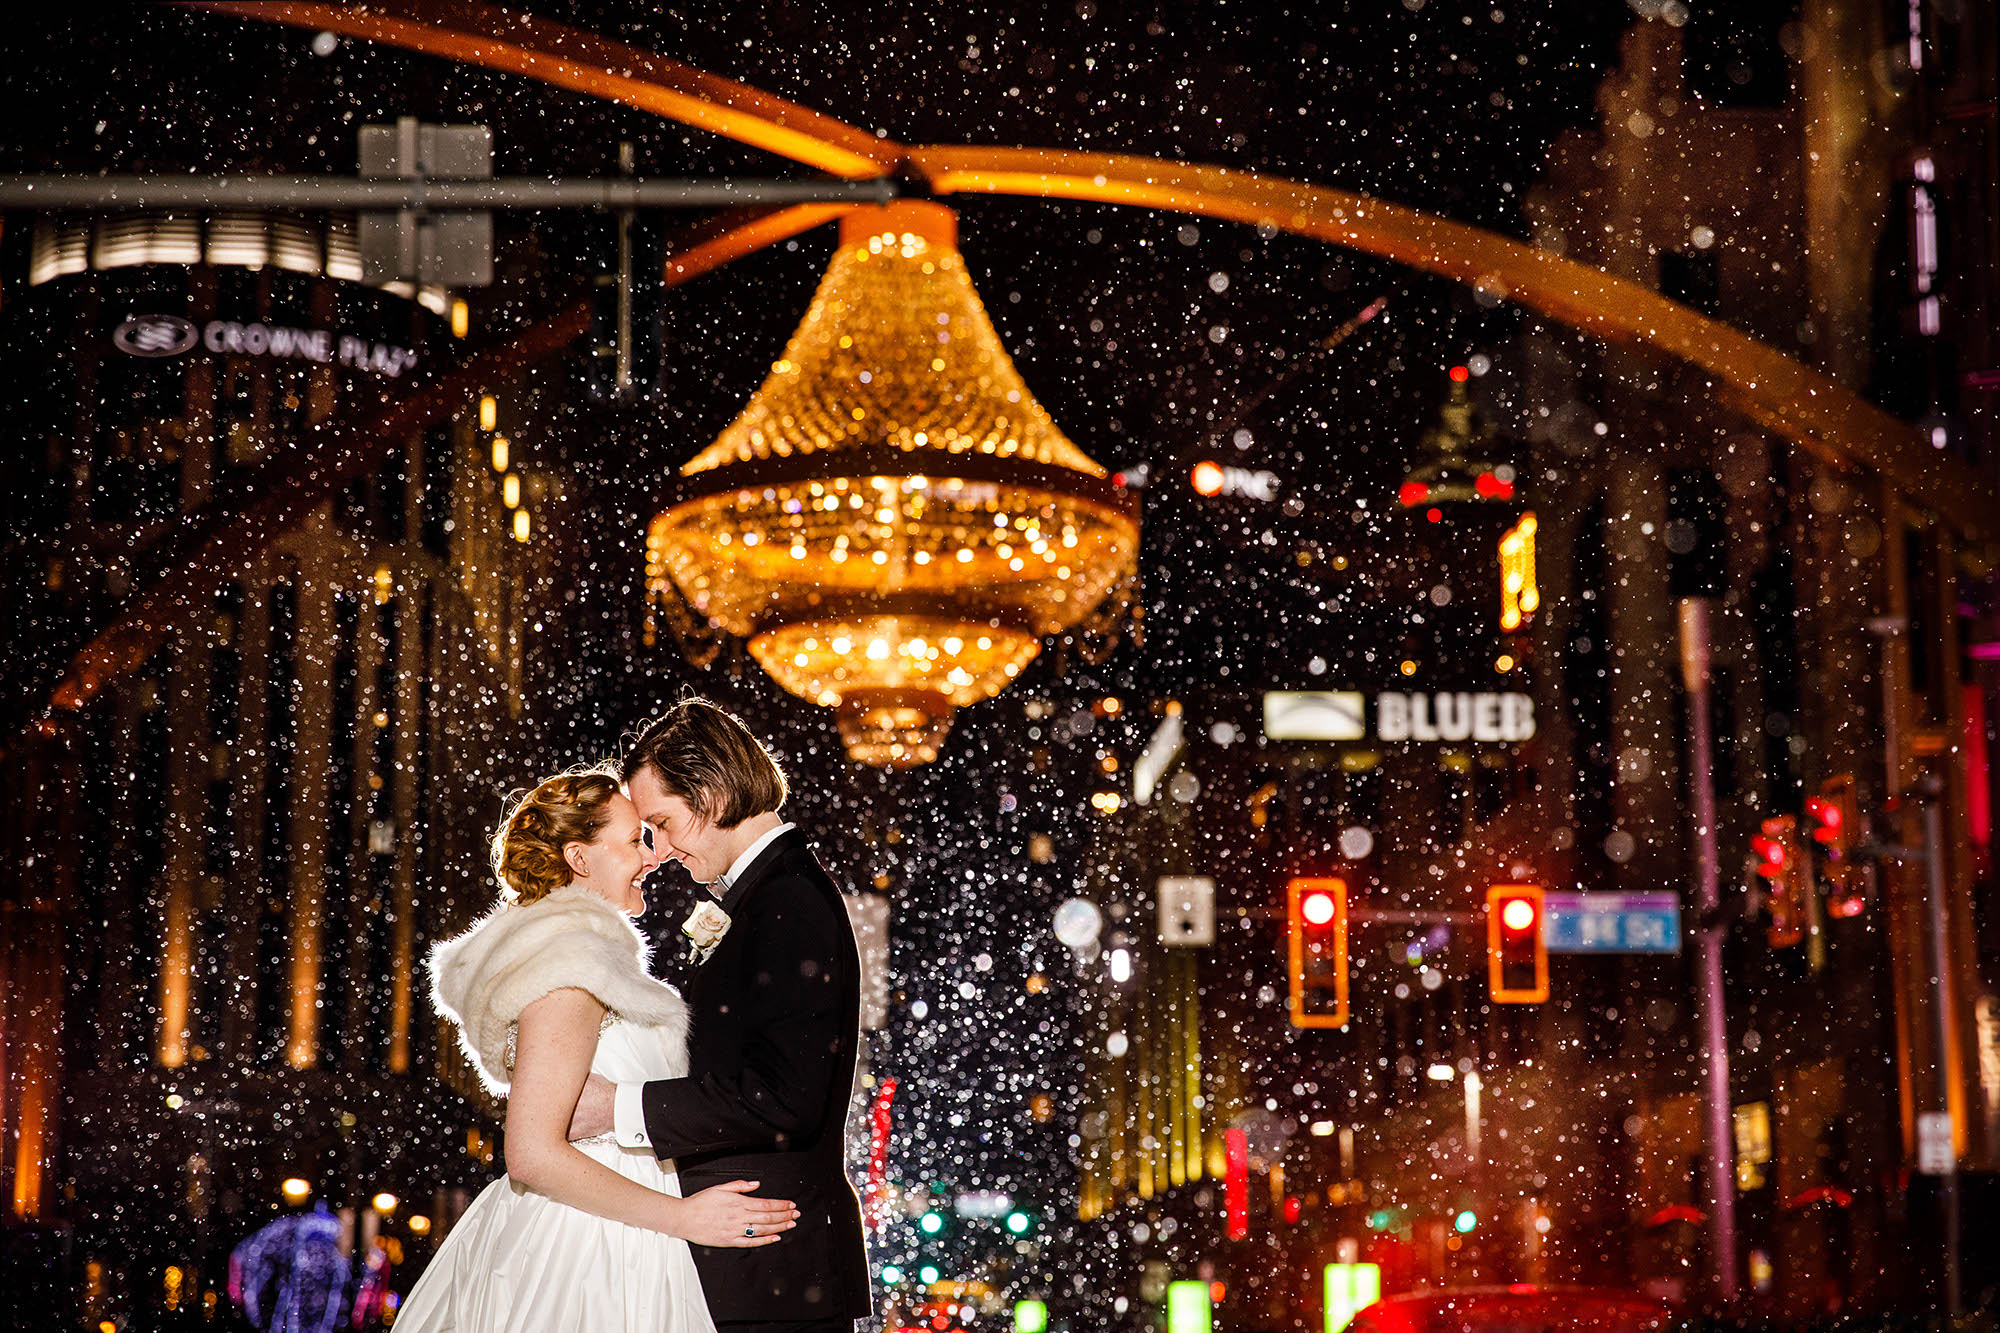 A bride and groom under the chandelier at Playhouse Square as the snow gently falls behind them.